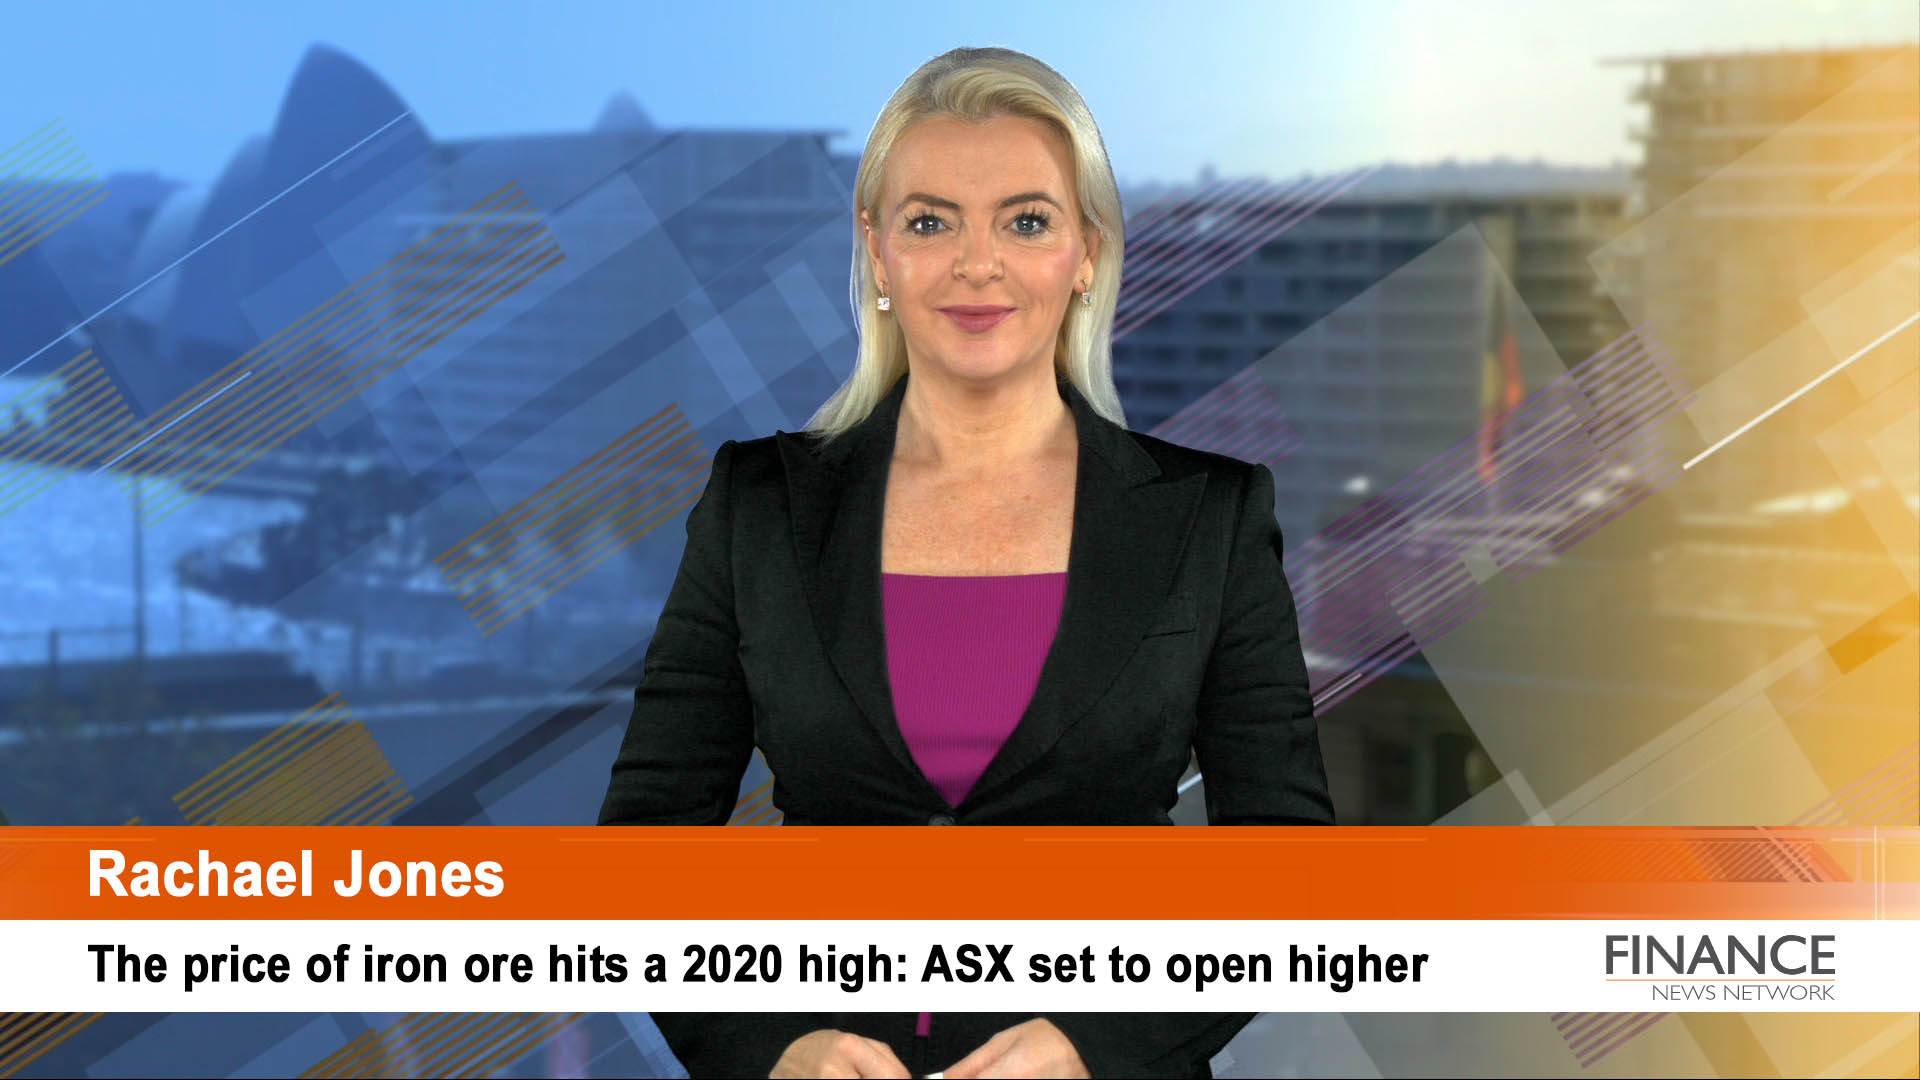 The price of iron ore hits a 2020 high: ASX set to open higher